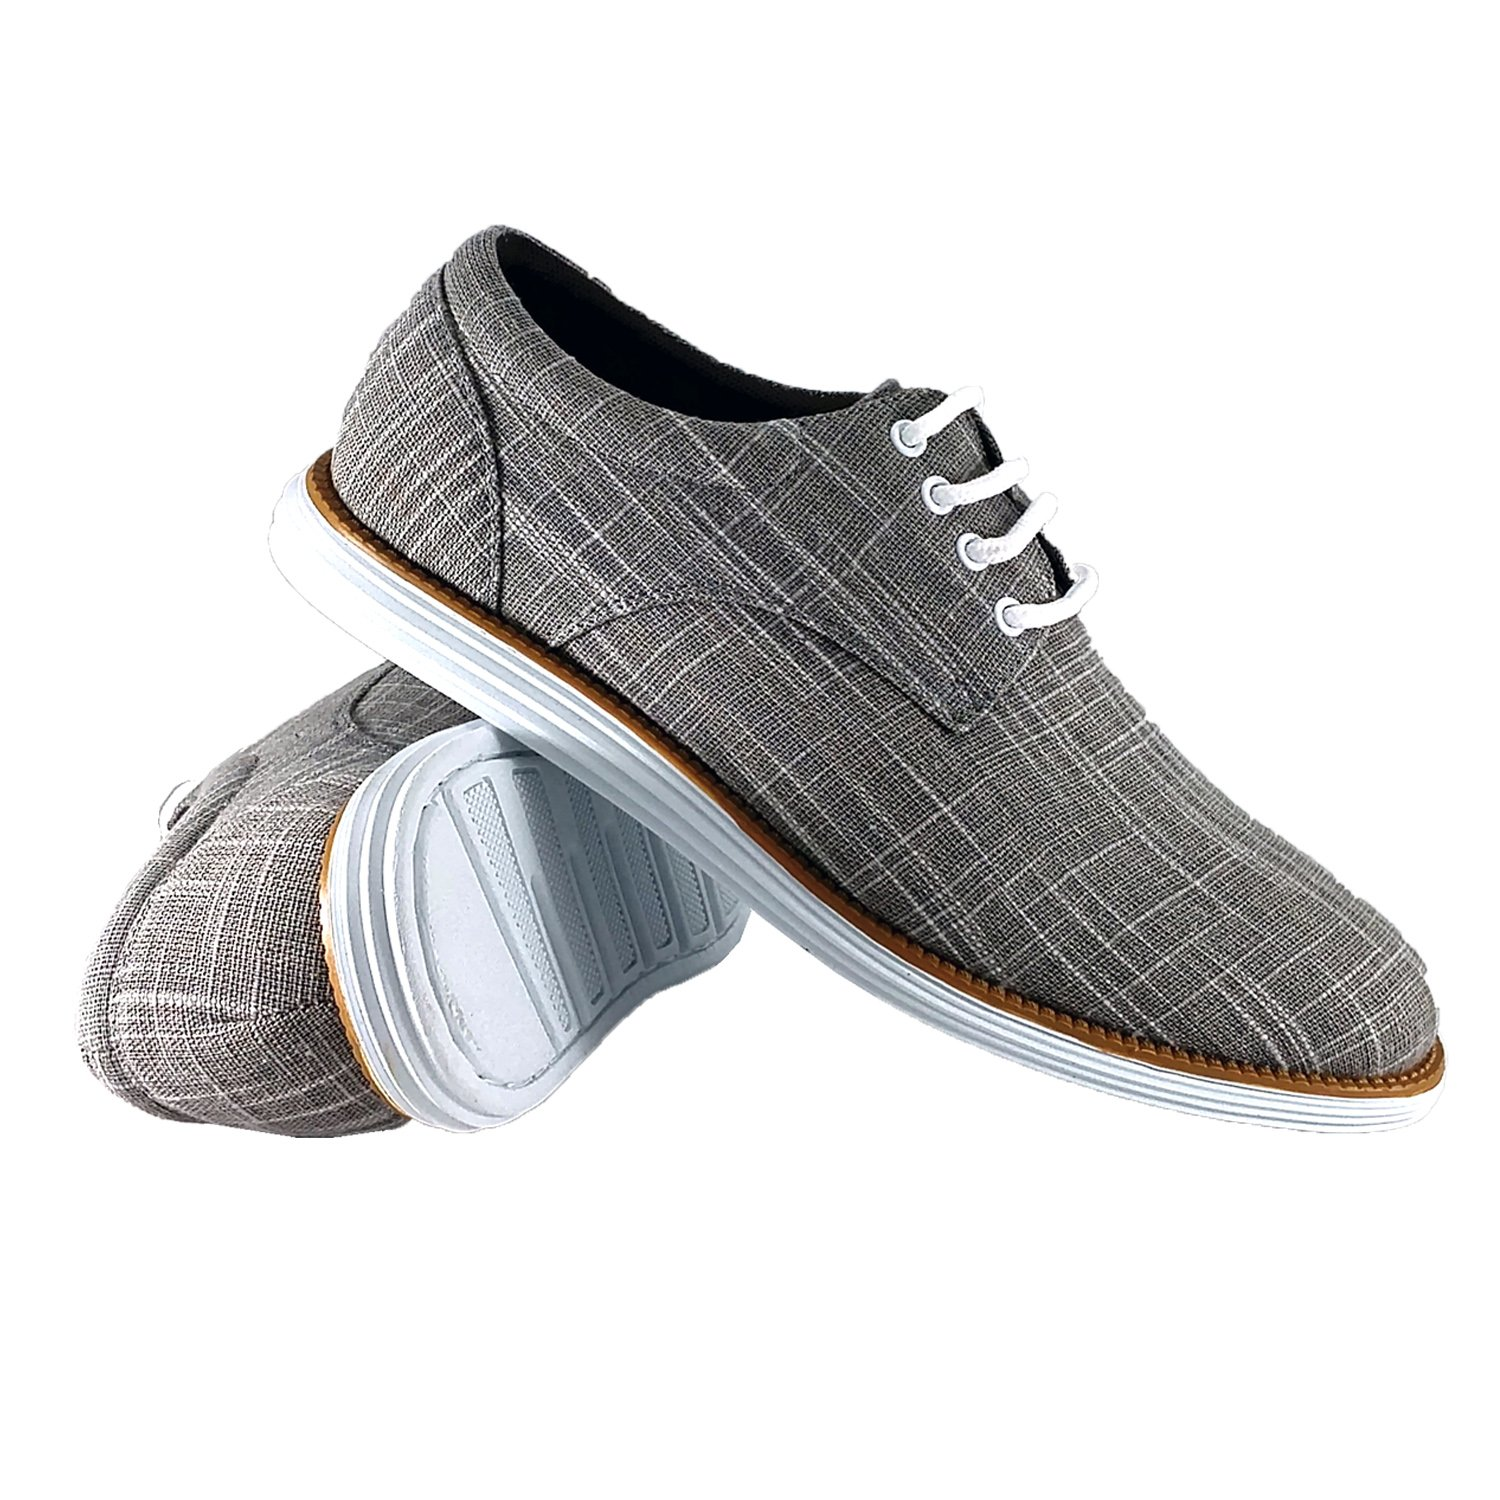 reverse Men's Oxford Dress Comfort Everyday Walking Lace-up Shoe, Gray 8.5 D(M) US